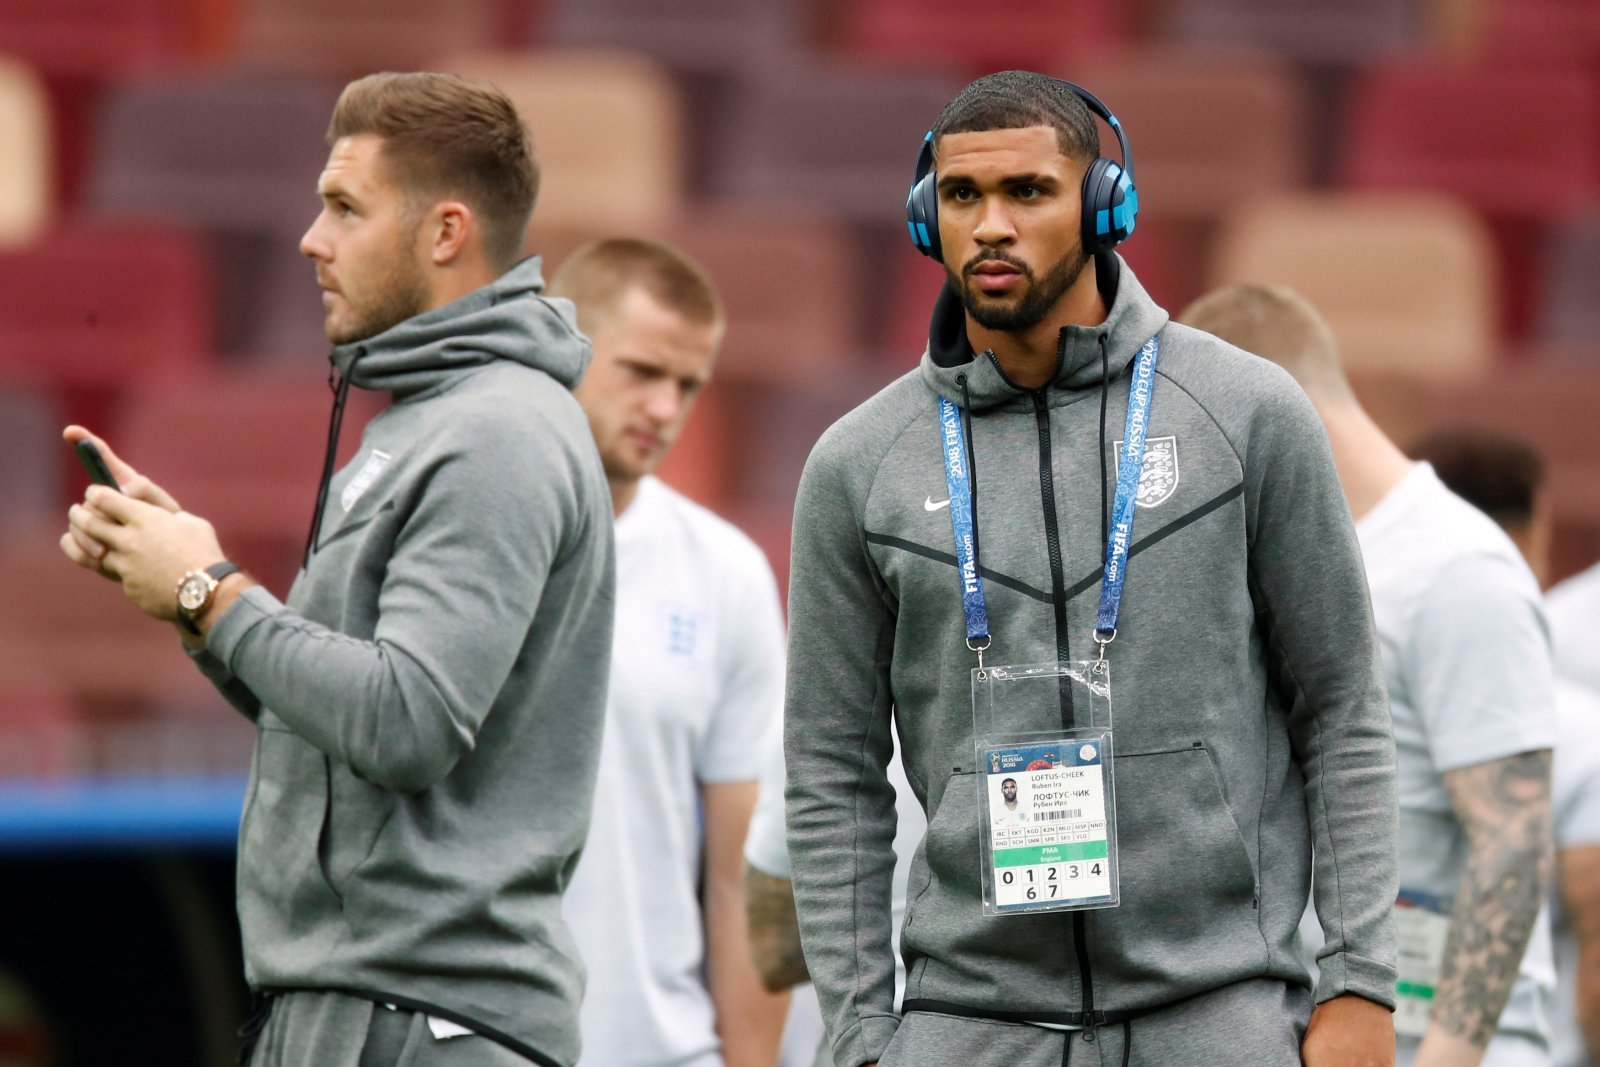 Chelsea fans have reacted positively to the prospect of Ruben Loftus-Cheek departing on loan